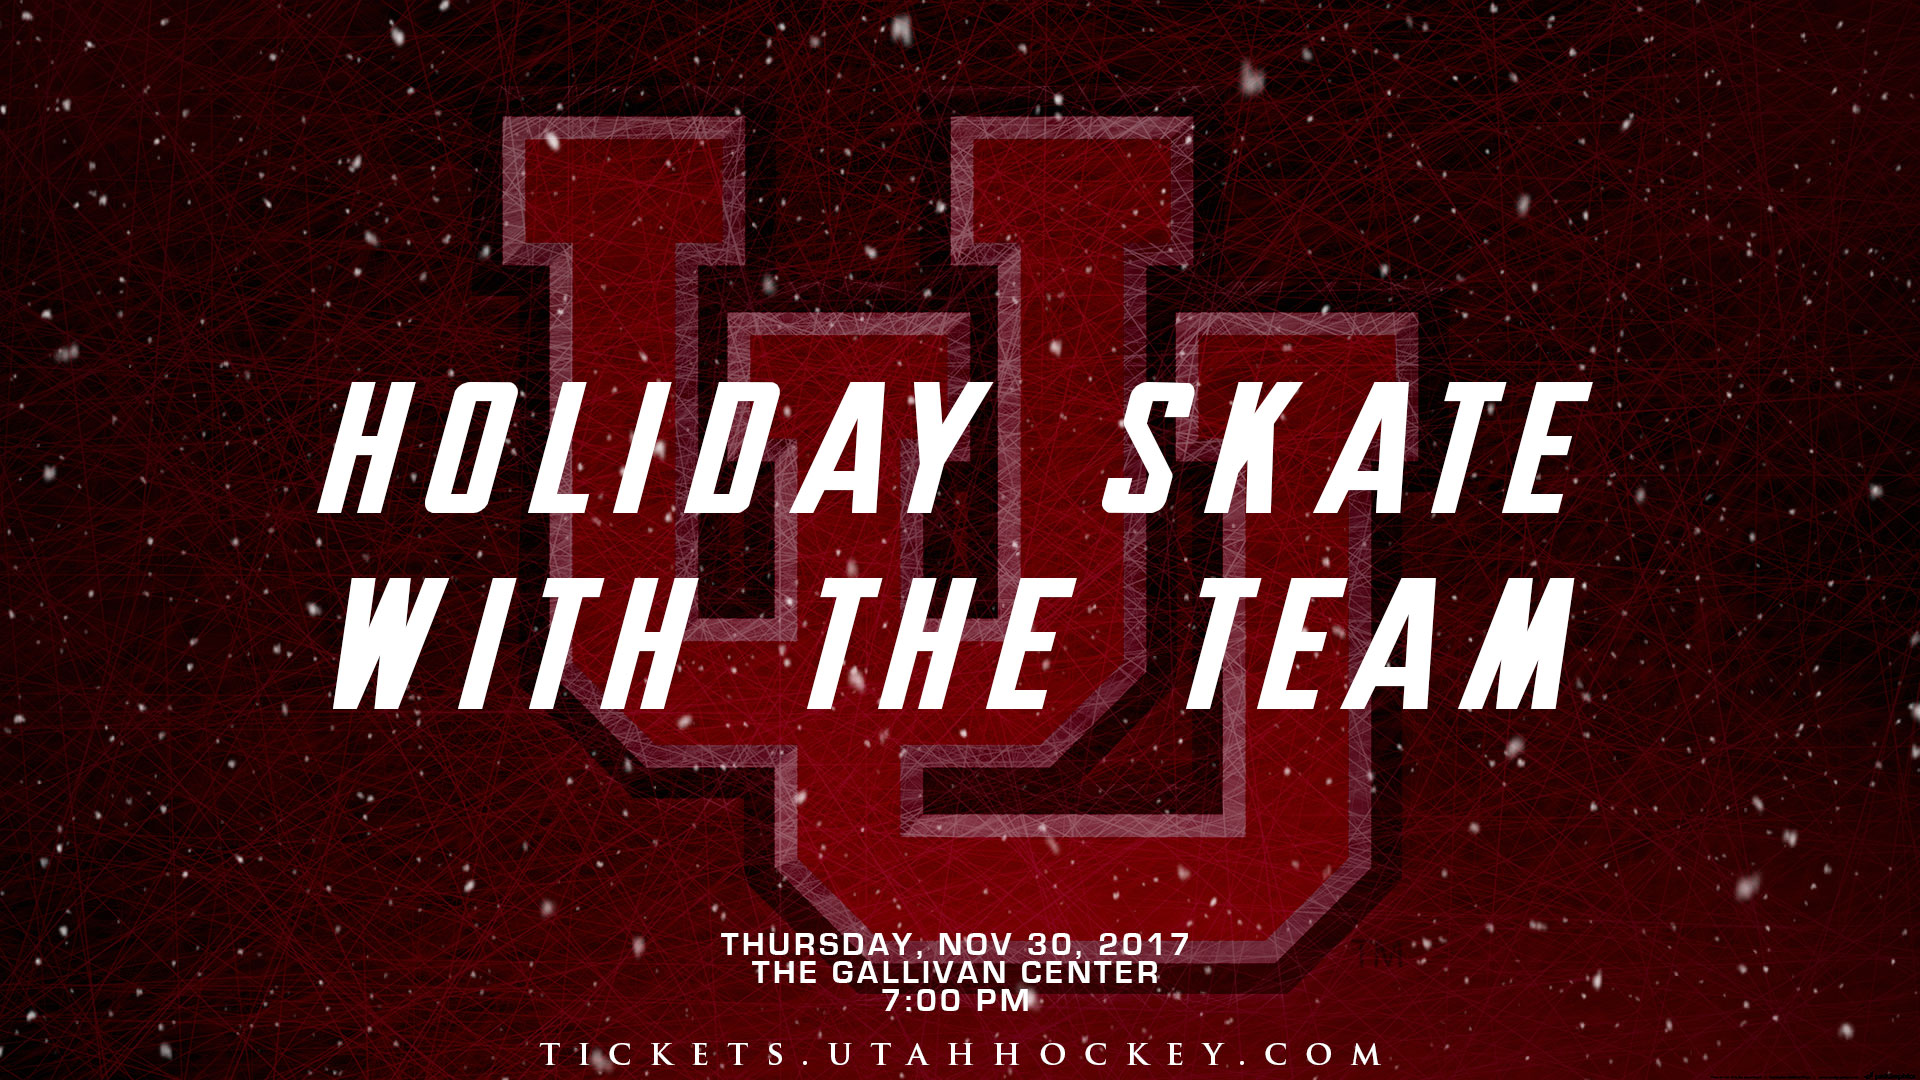 20171130_Holiday-Skate-with-the-Team_1920x1080.jpg